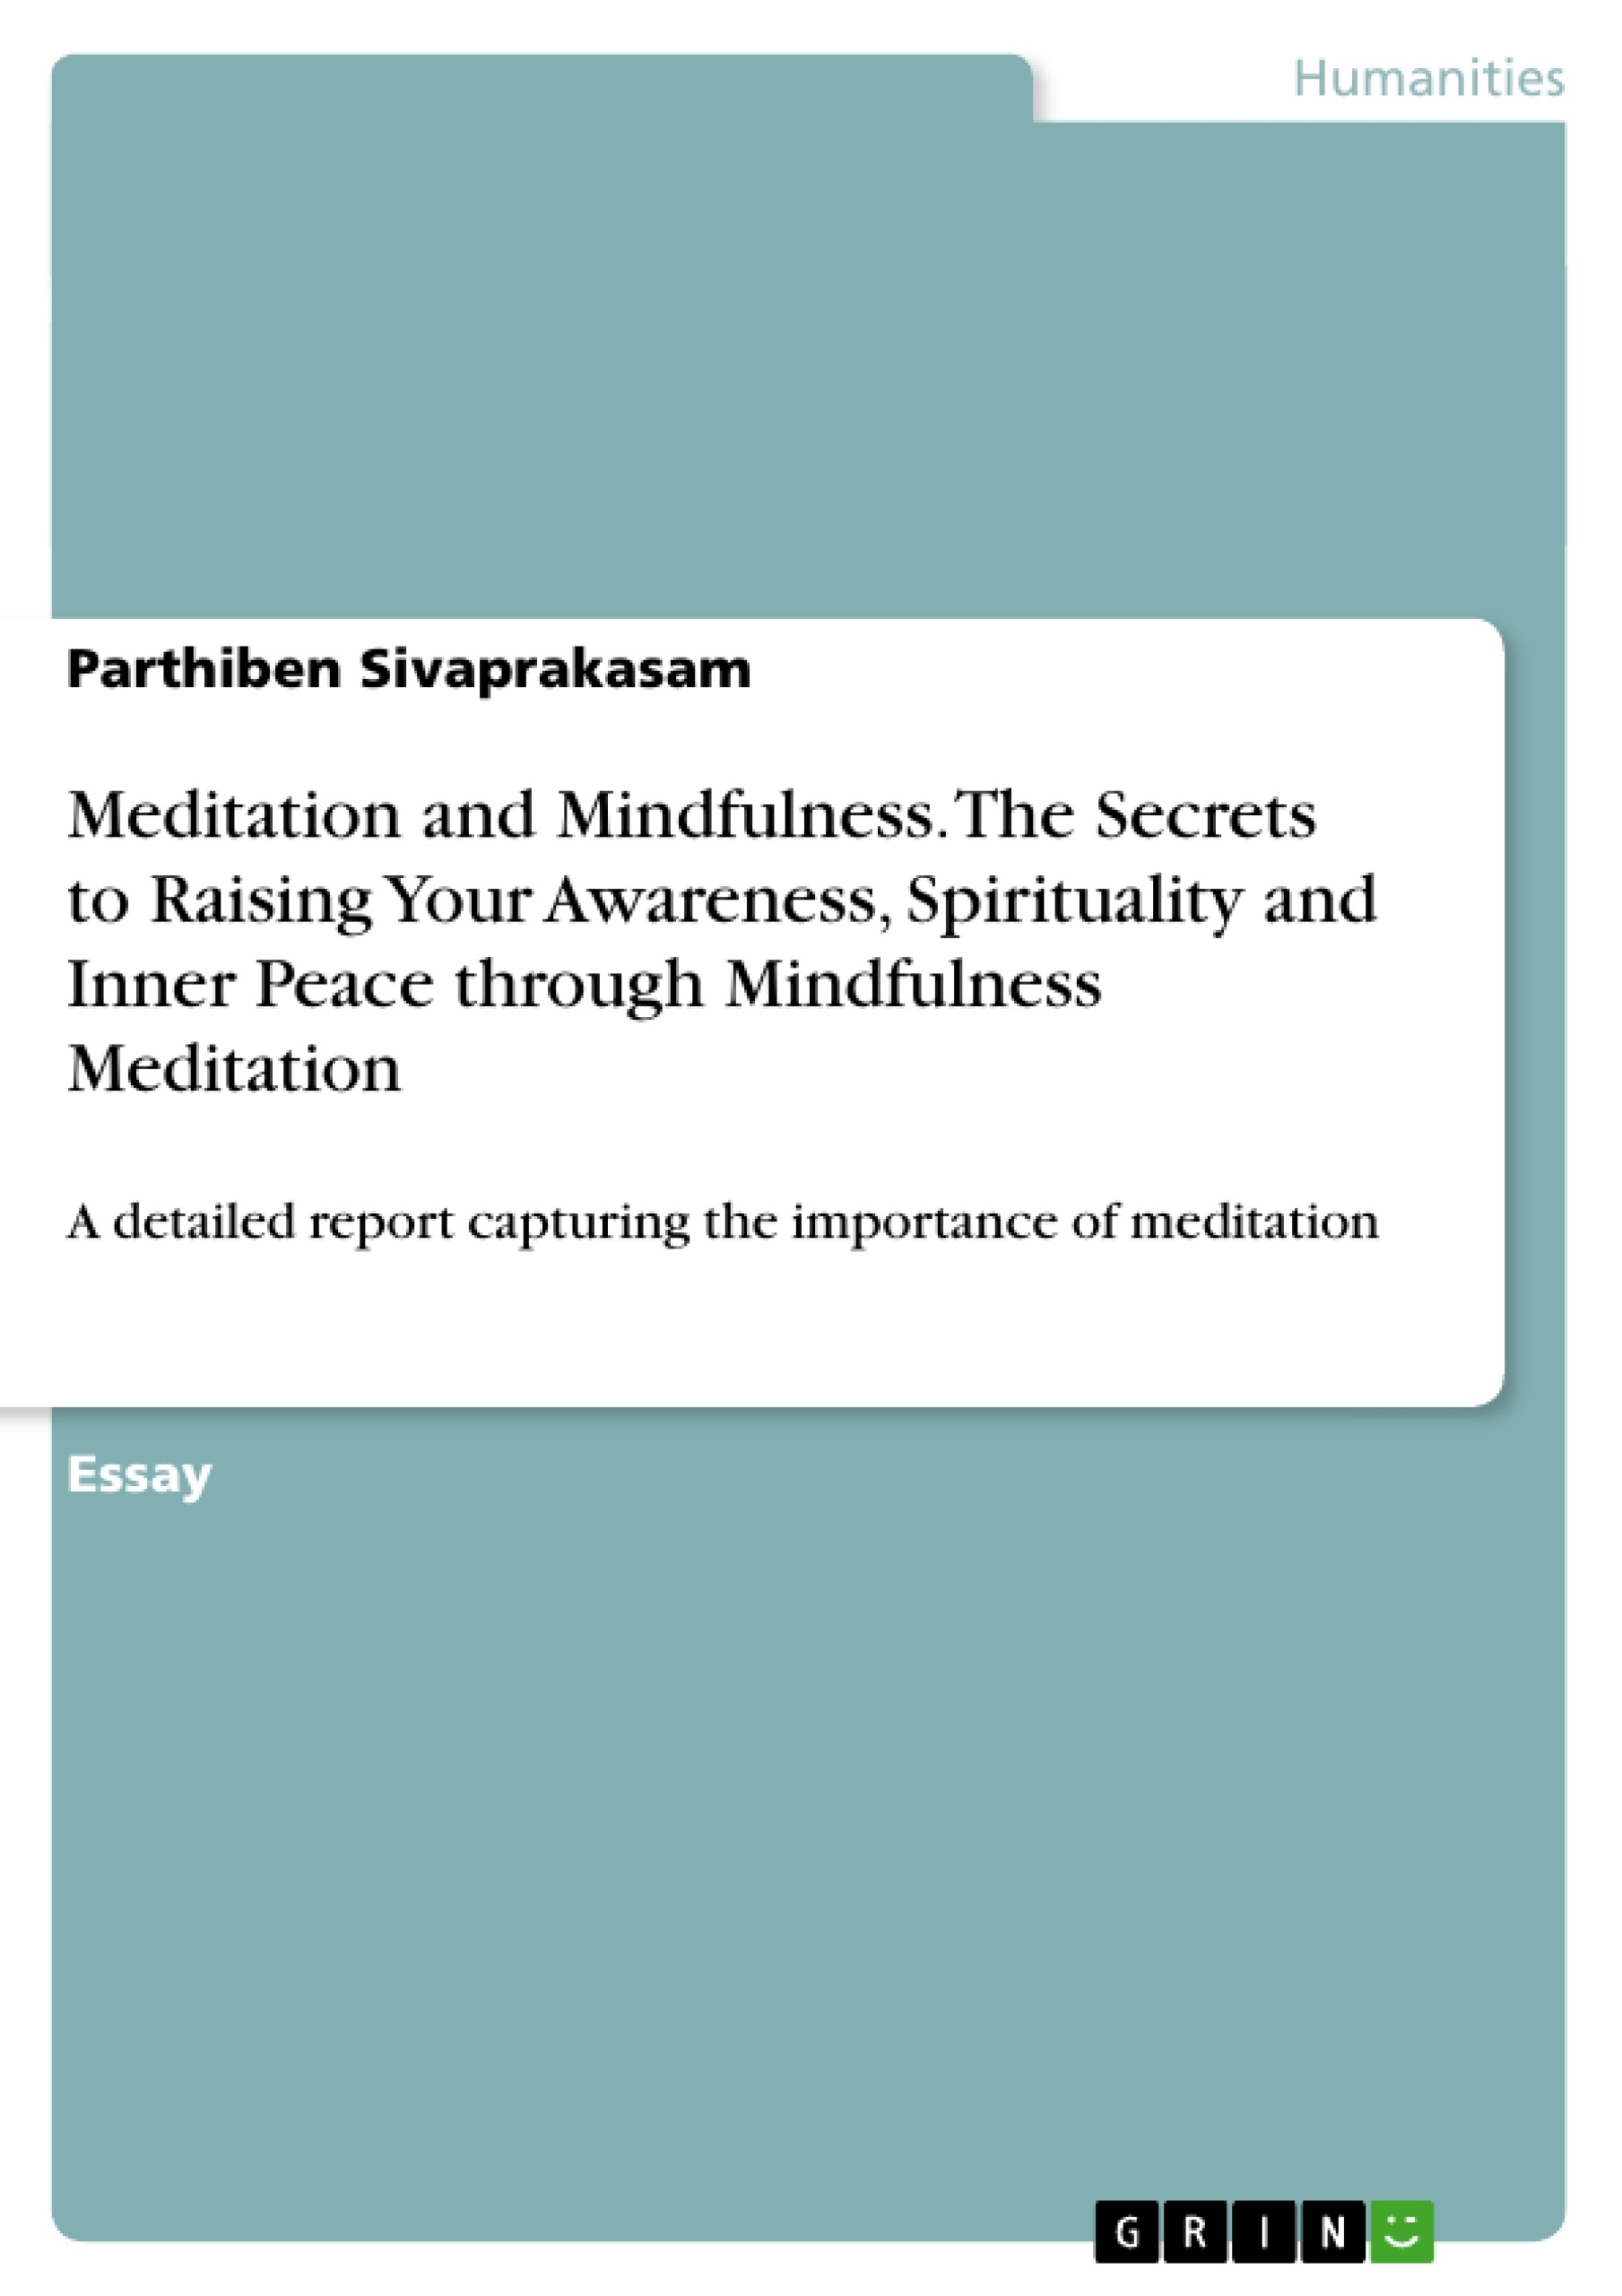 Title: Meditation and Mindfulness. The Secrets to Raising Your Awareness, Spirituality and Inner Peace through Mindfulness Meditation